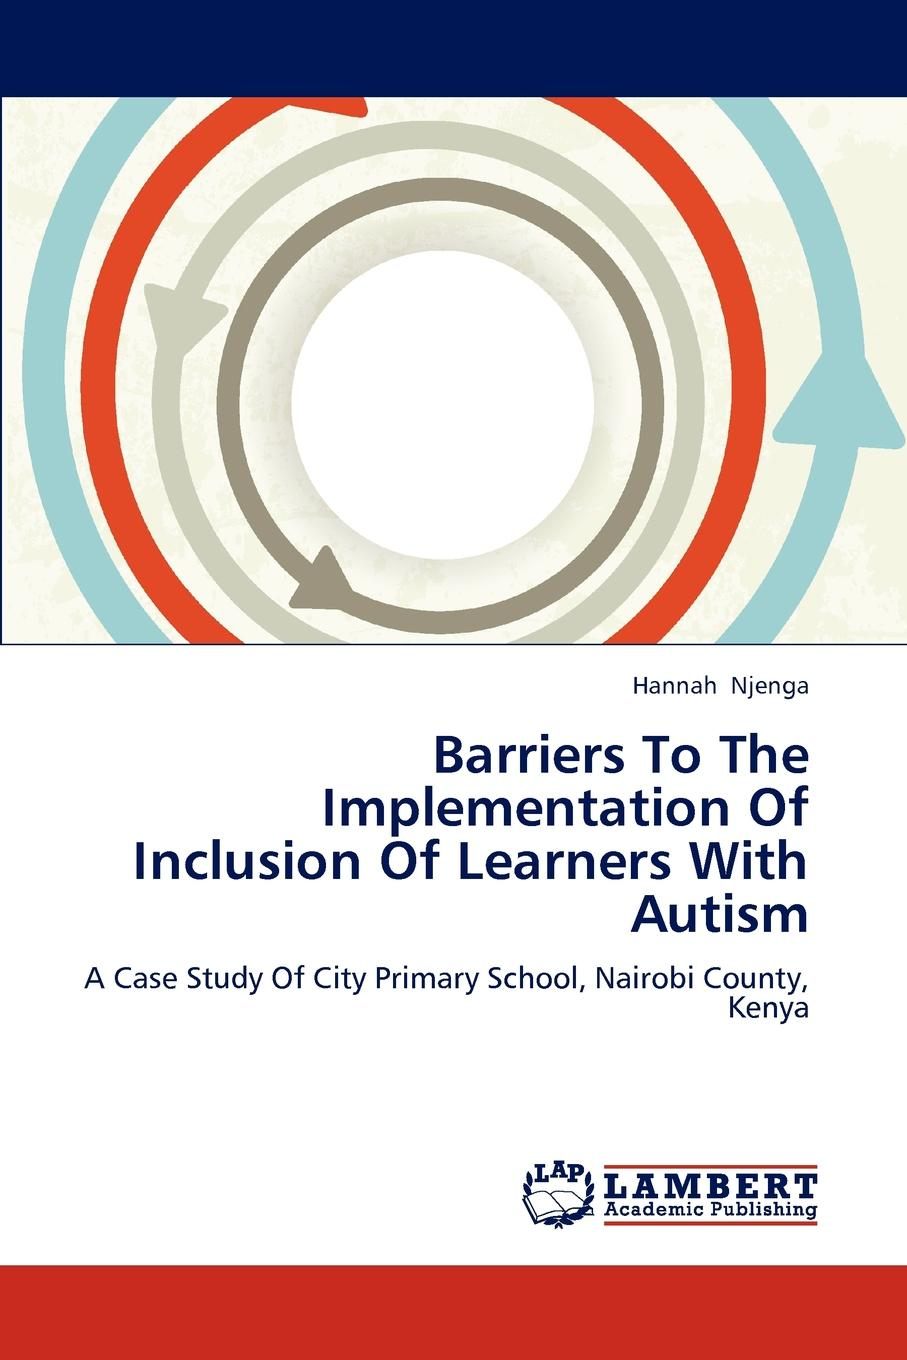 Njenga Hannah Barriers To The Implementation Of Inclusion Of Learners With Autism mohamed mbarouk suleiman teachers experiences of teaching science with limited laboratory resources